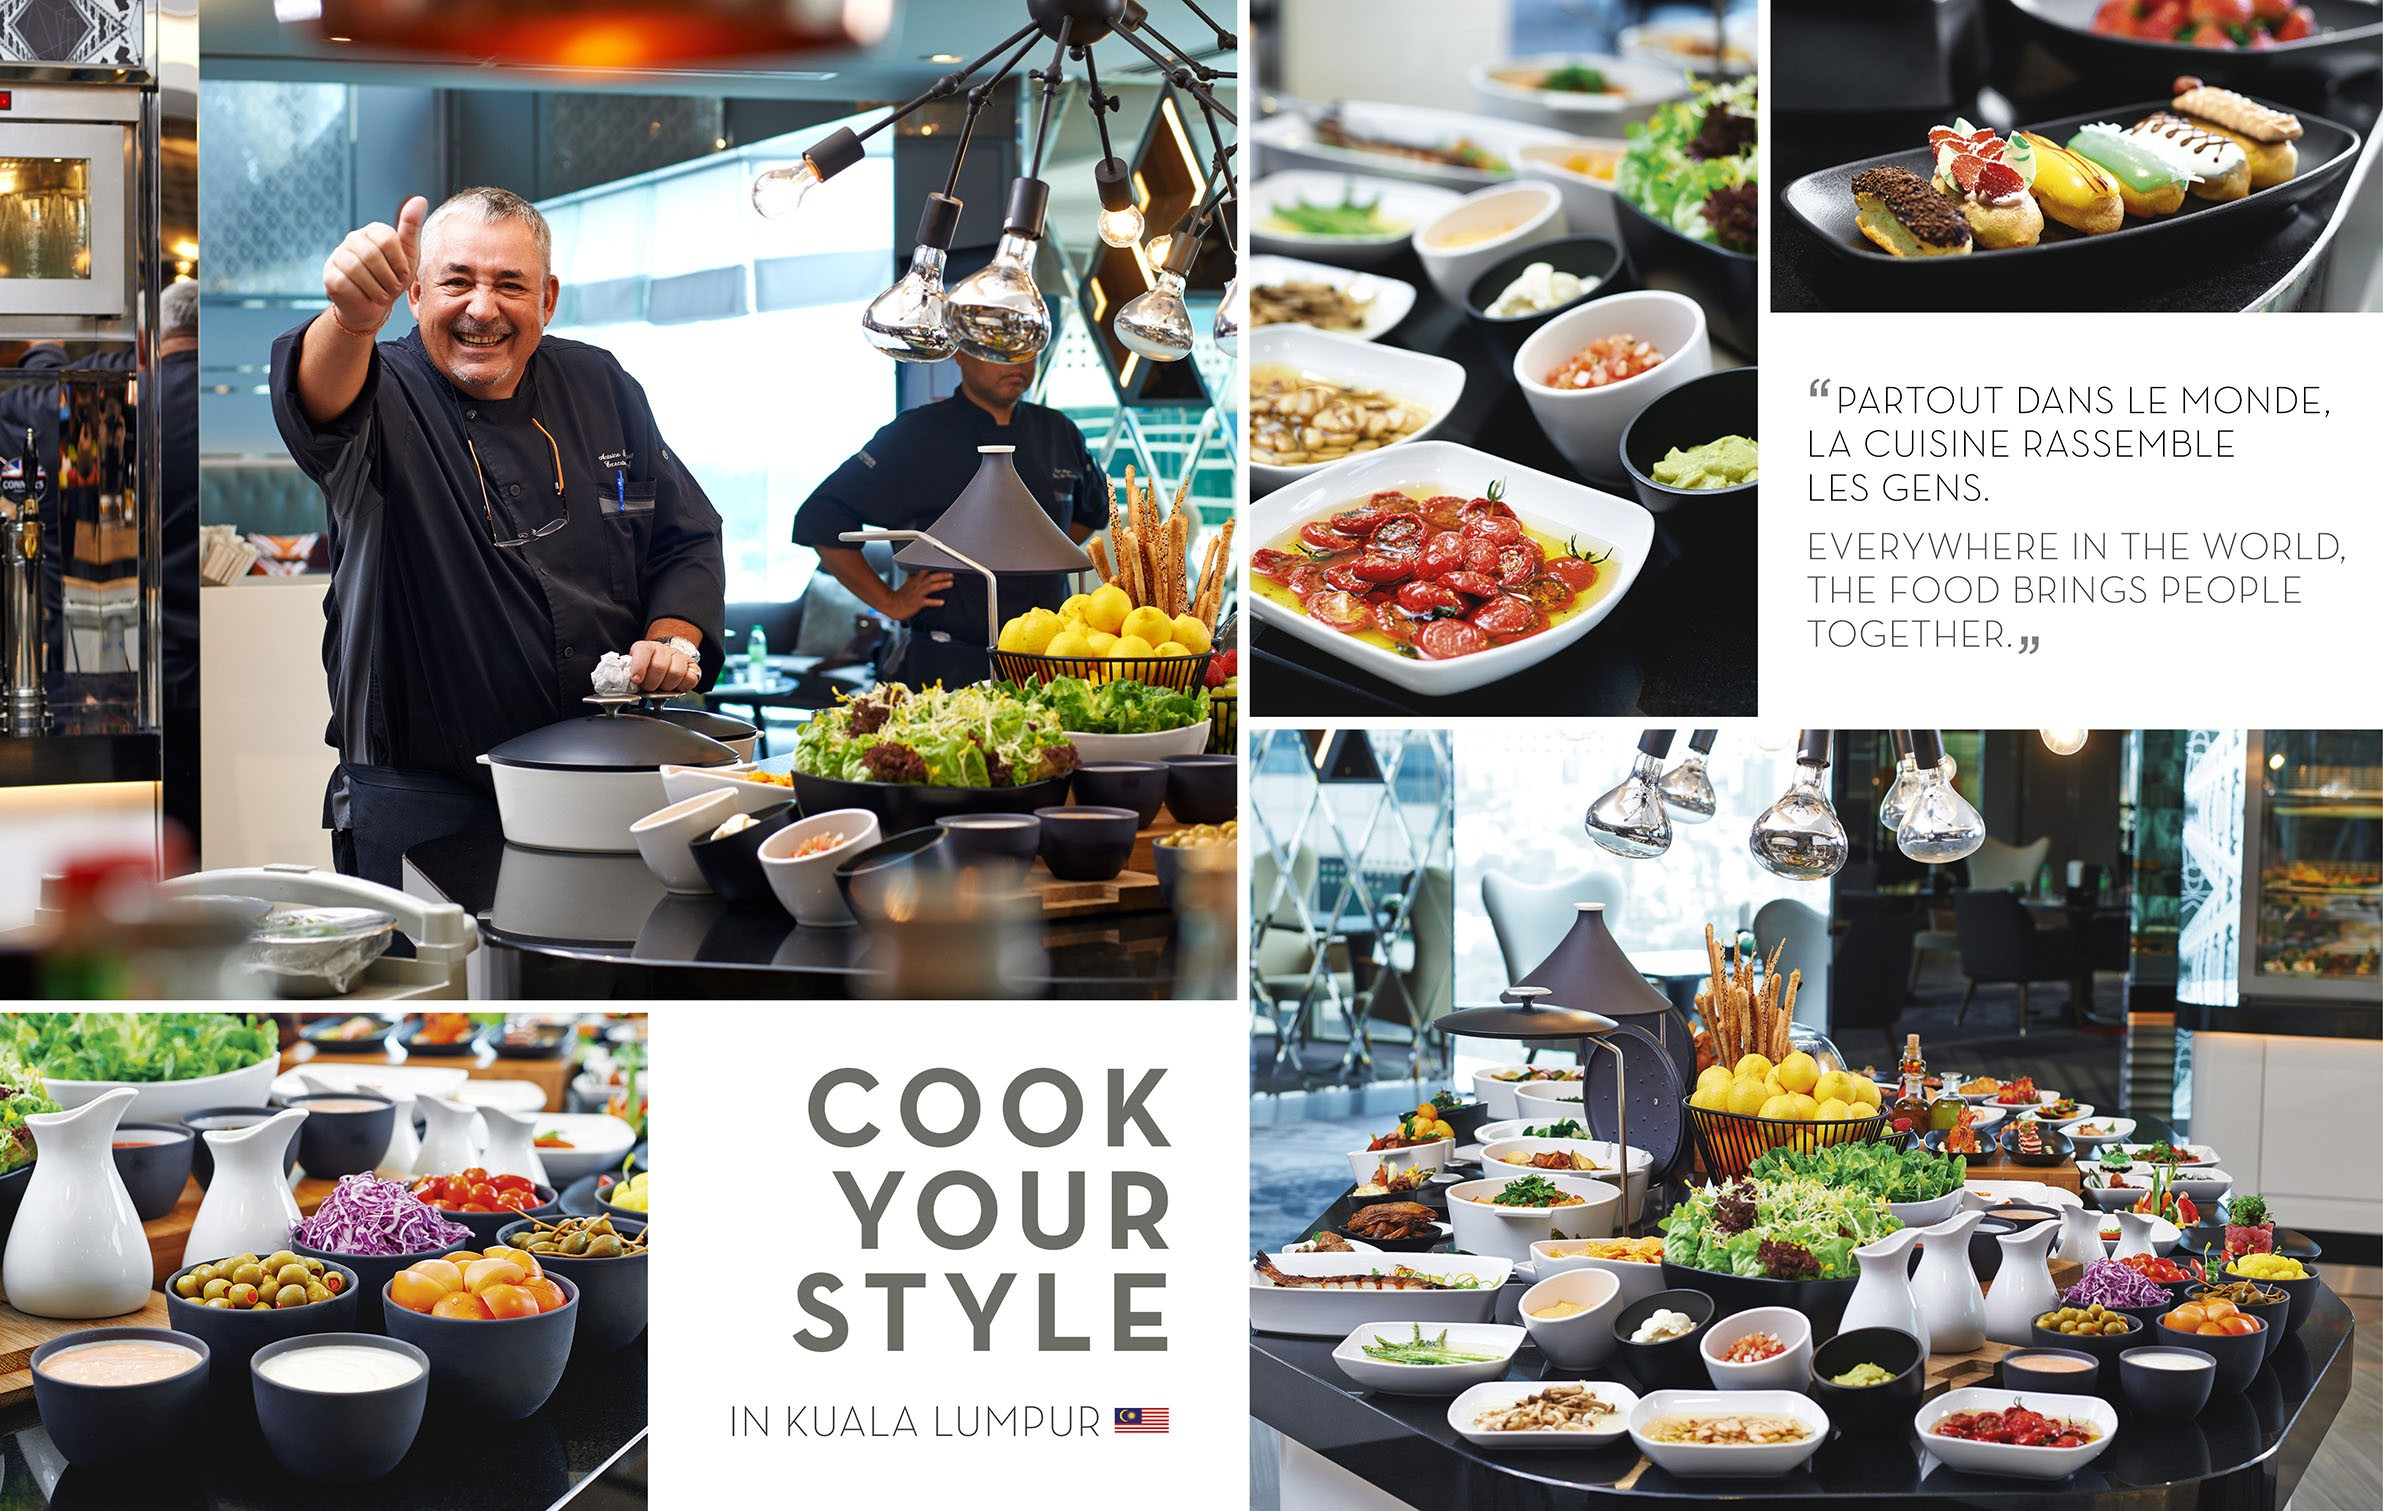 cook your style in Kuala Lumpur - Le Meridien